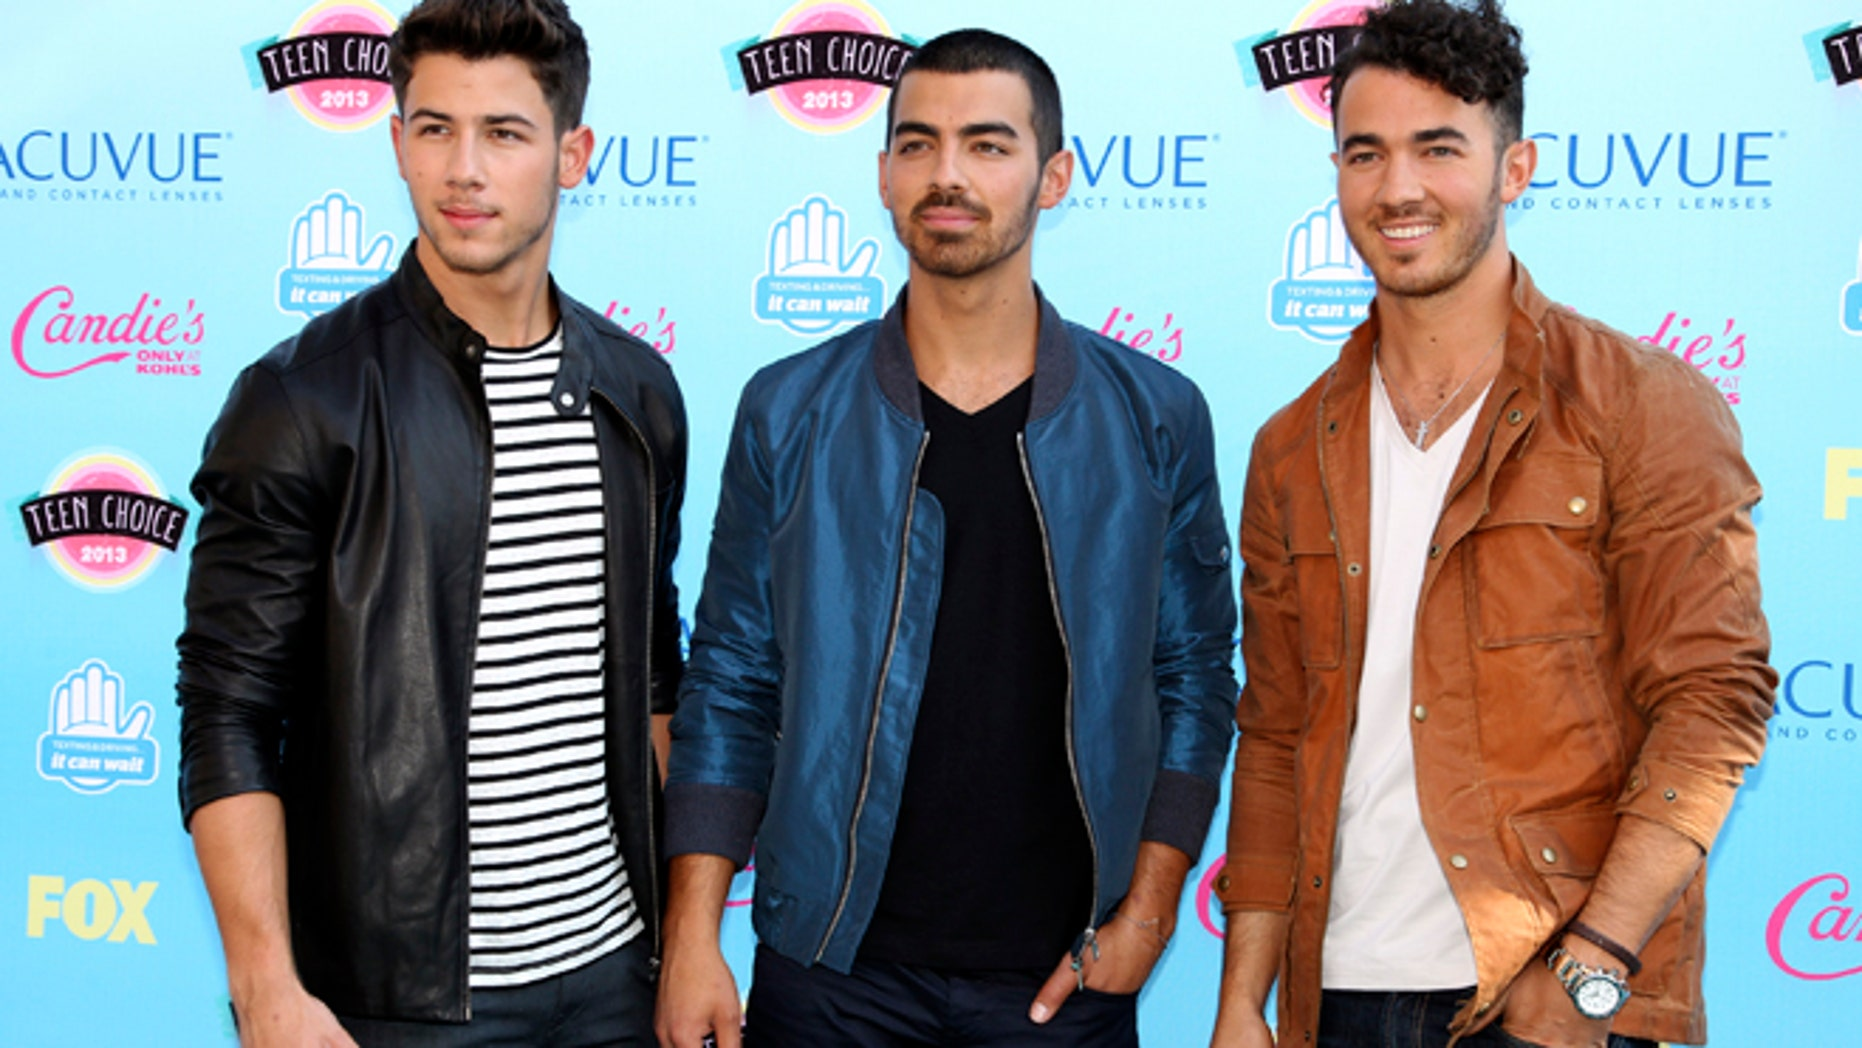 Nick, Joe and Kevin Jonas pose as they arrive at the Teen Choice Awards at the Gibson amphitheatre in Universal City, California August 11, 2013.